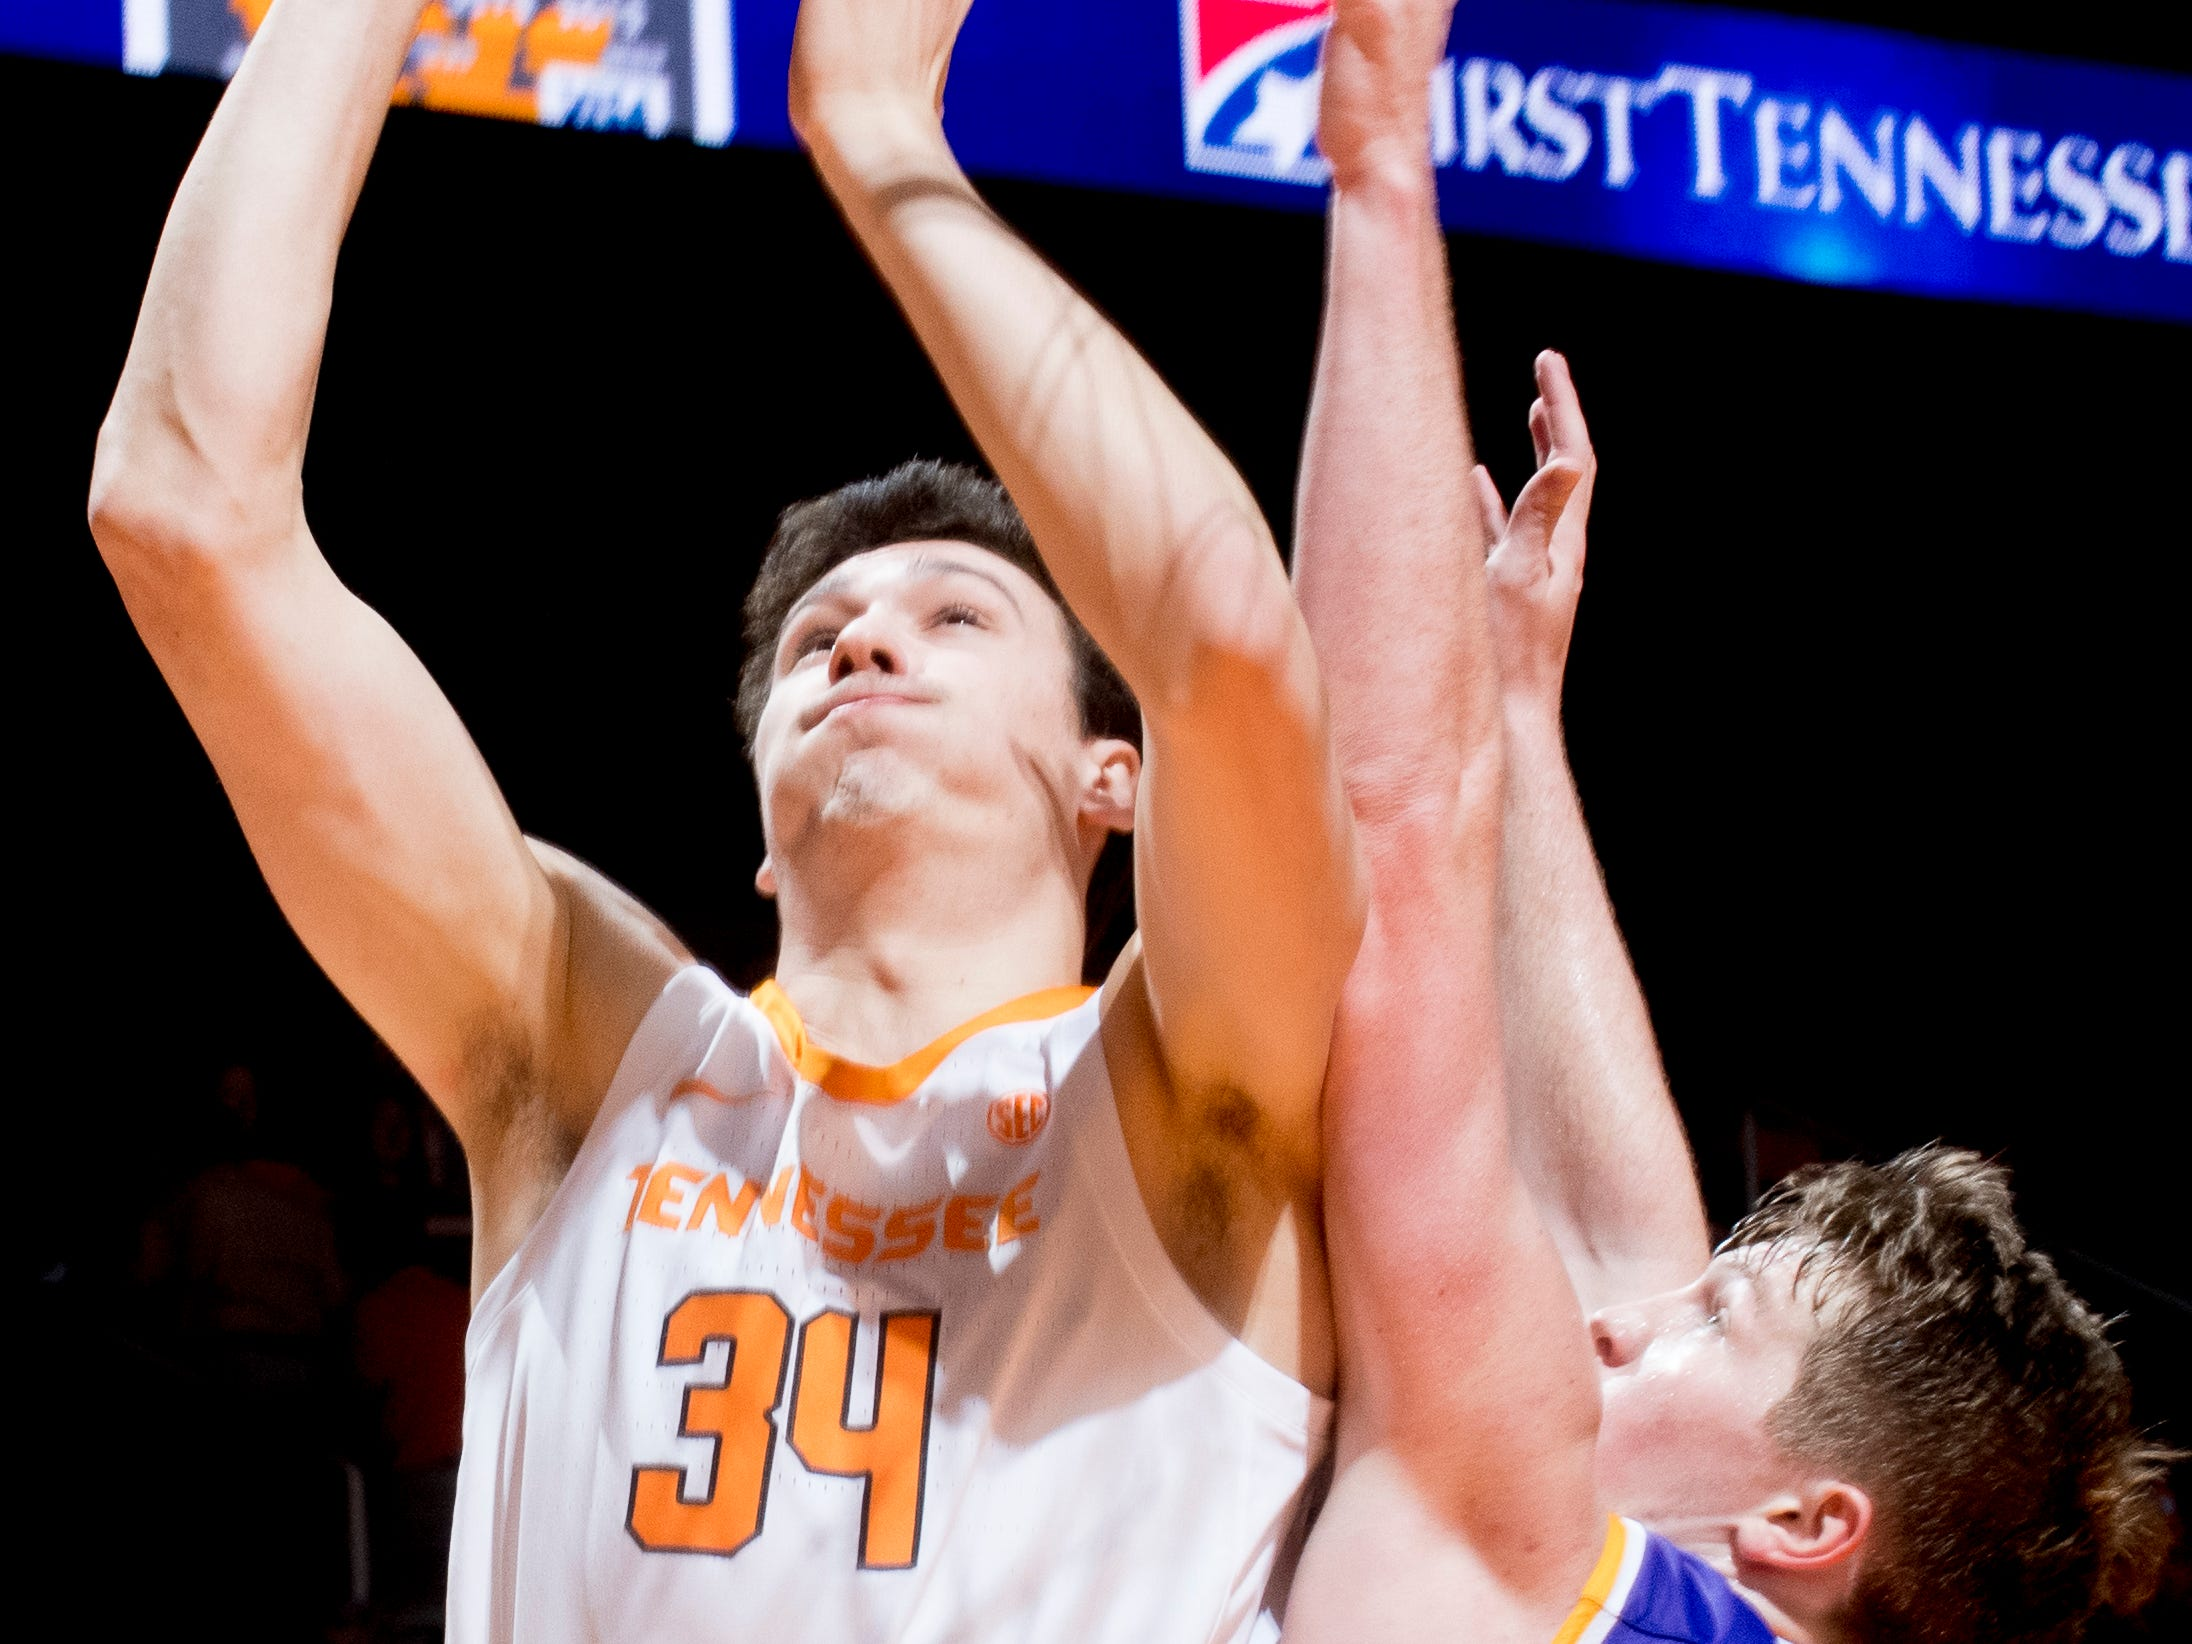 Tennessee forward Brock Jancek (34) shoots a layup past Tennessee Tech forward Garrett Golday (24) during a game between Tennessee and Tennessee Tech at Thompson-Boling Arena in Knoxville, Tennessee on Saturday, December 29, 2018.